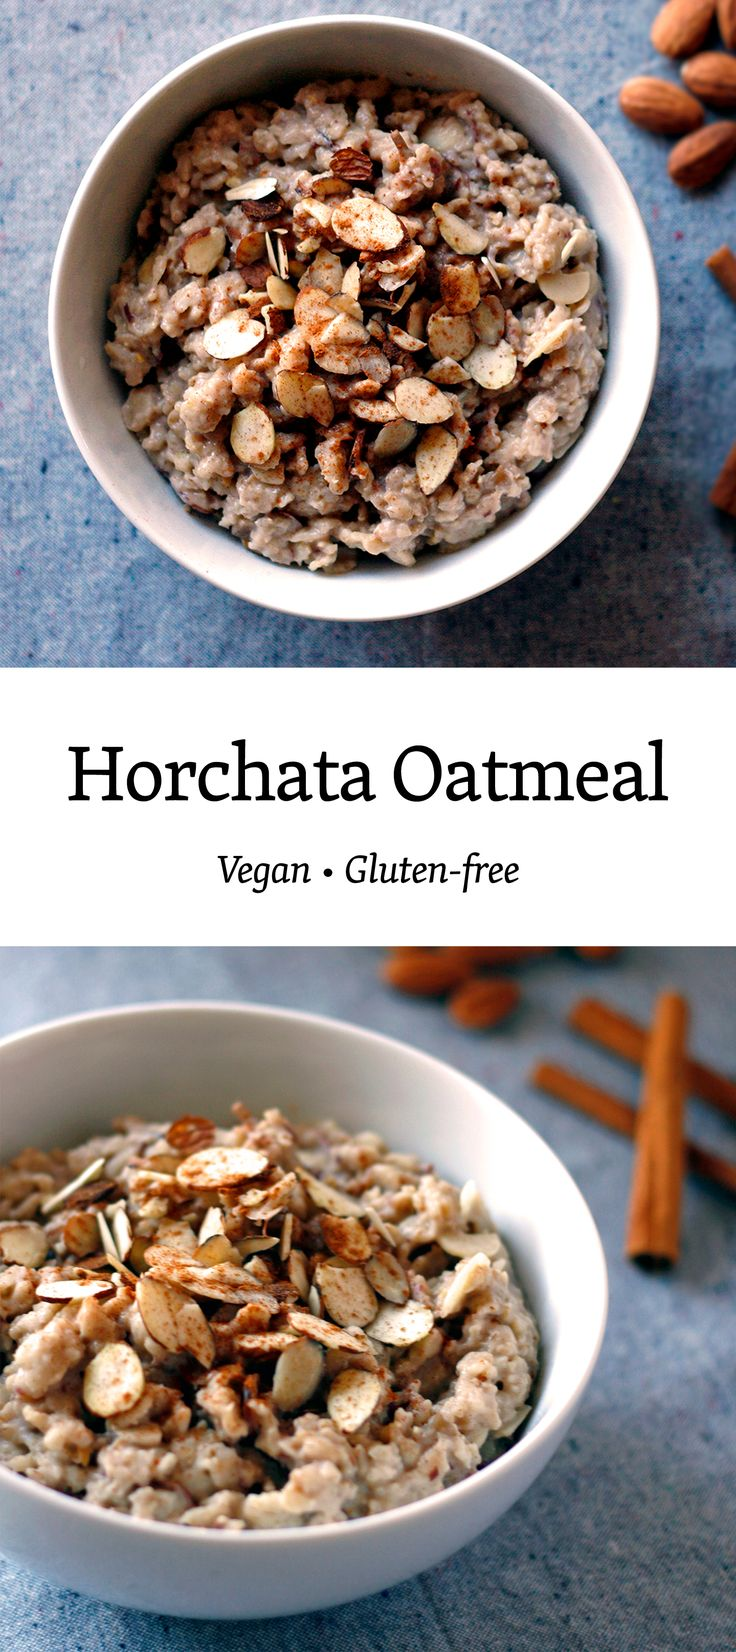 Nutty Horchata Oatmeal: reminiscent of warm summer afternoons with all the nutty, cinnamon goodness in a warm and cozy bowl. Gluten-free and soy-free.